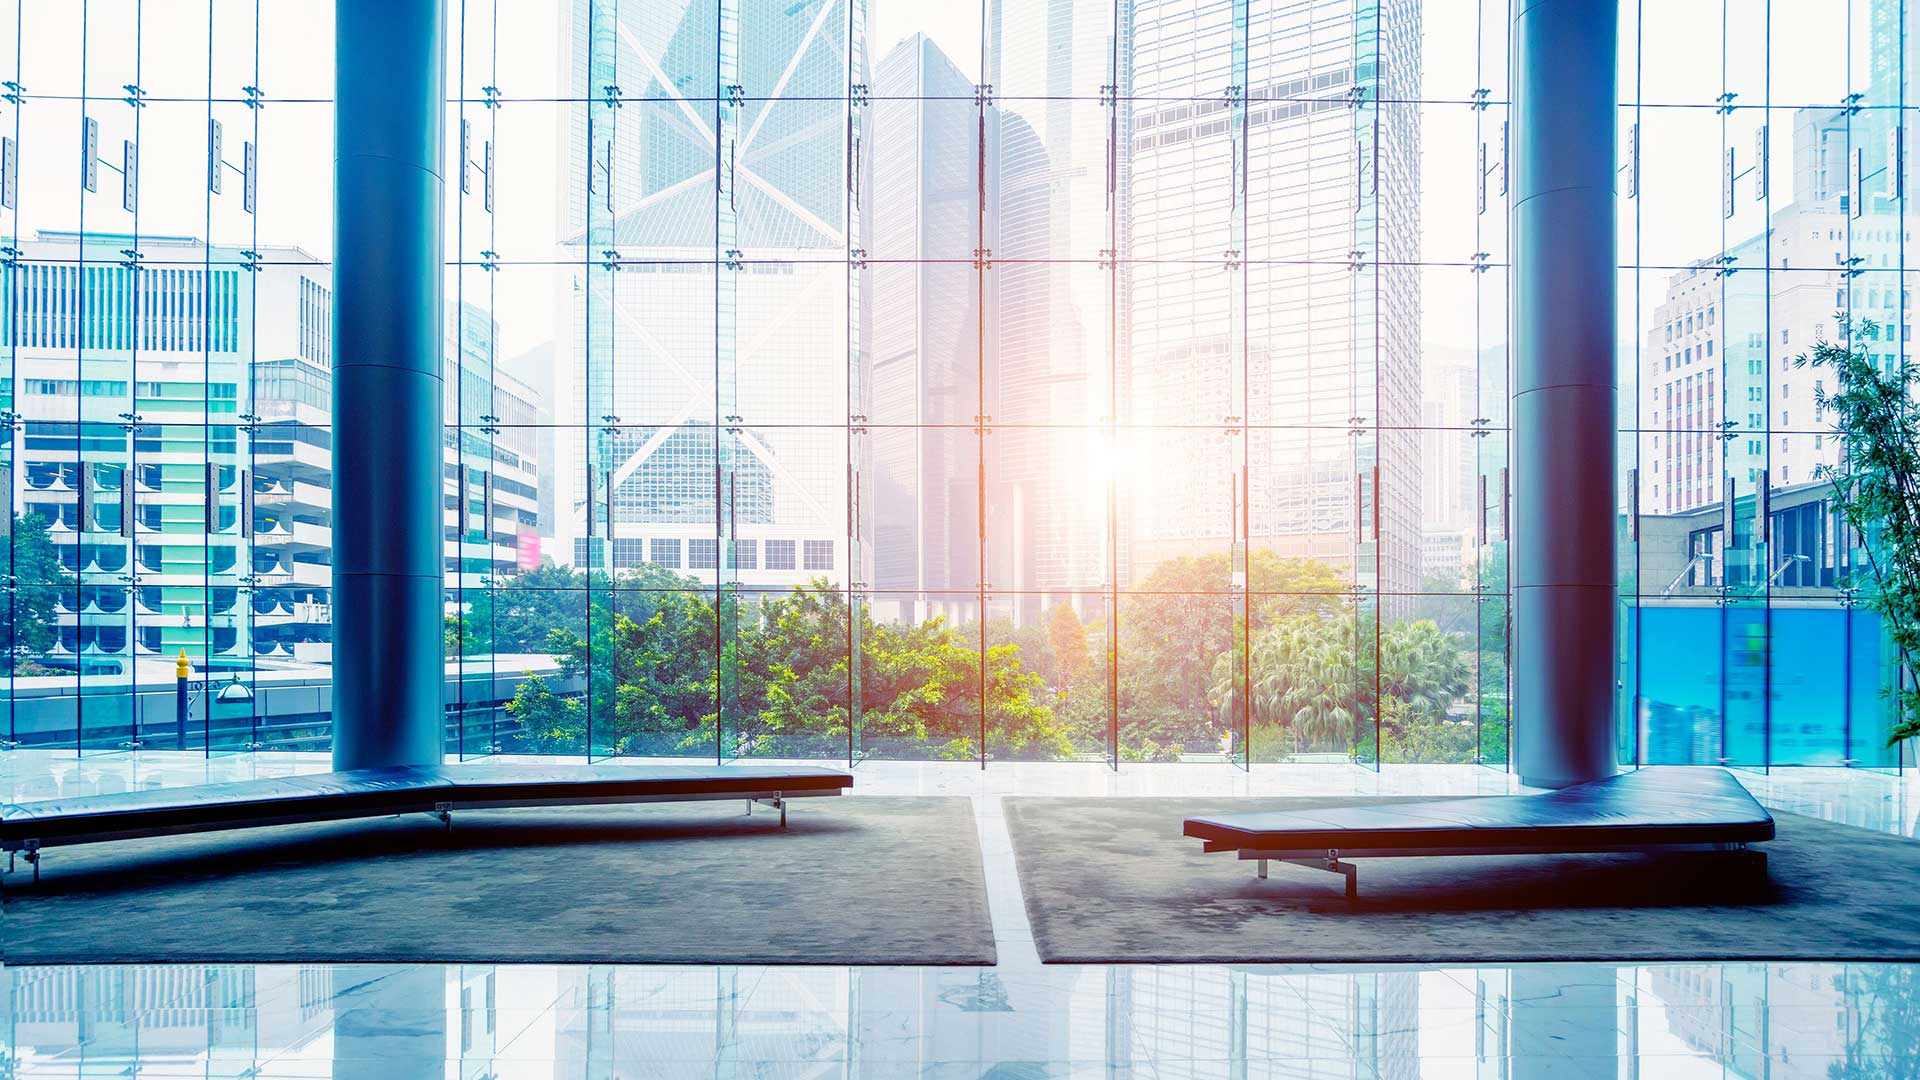 office building lounge with windows